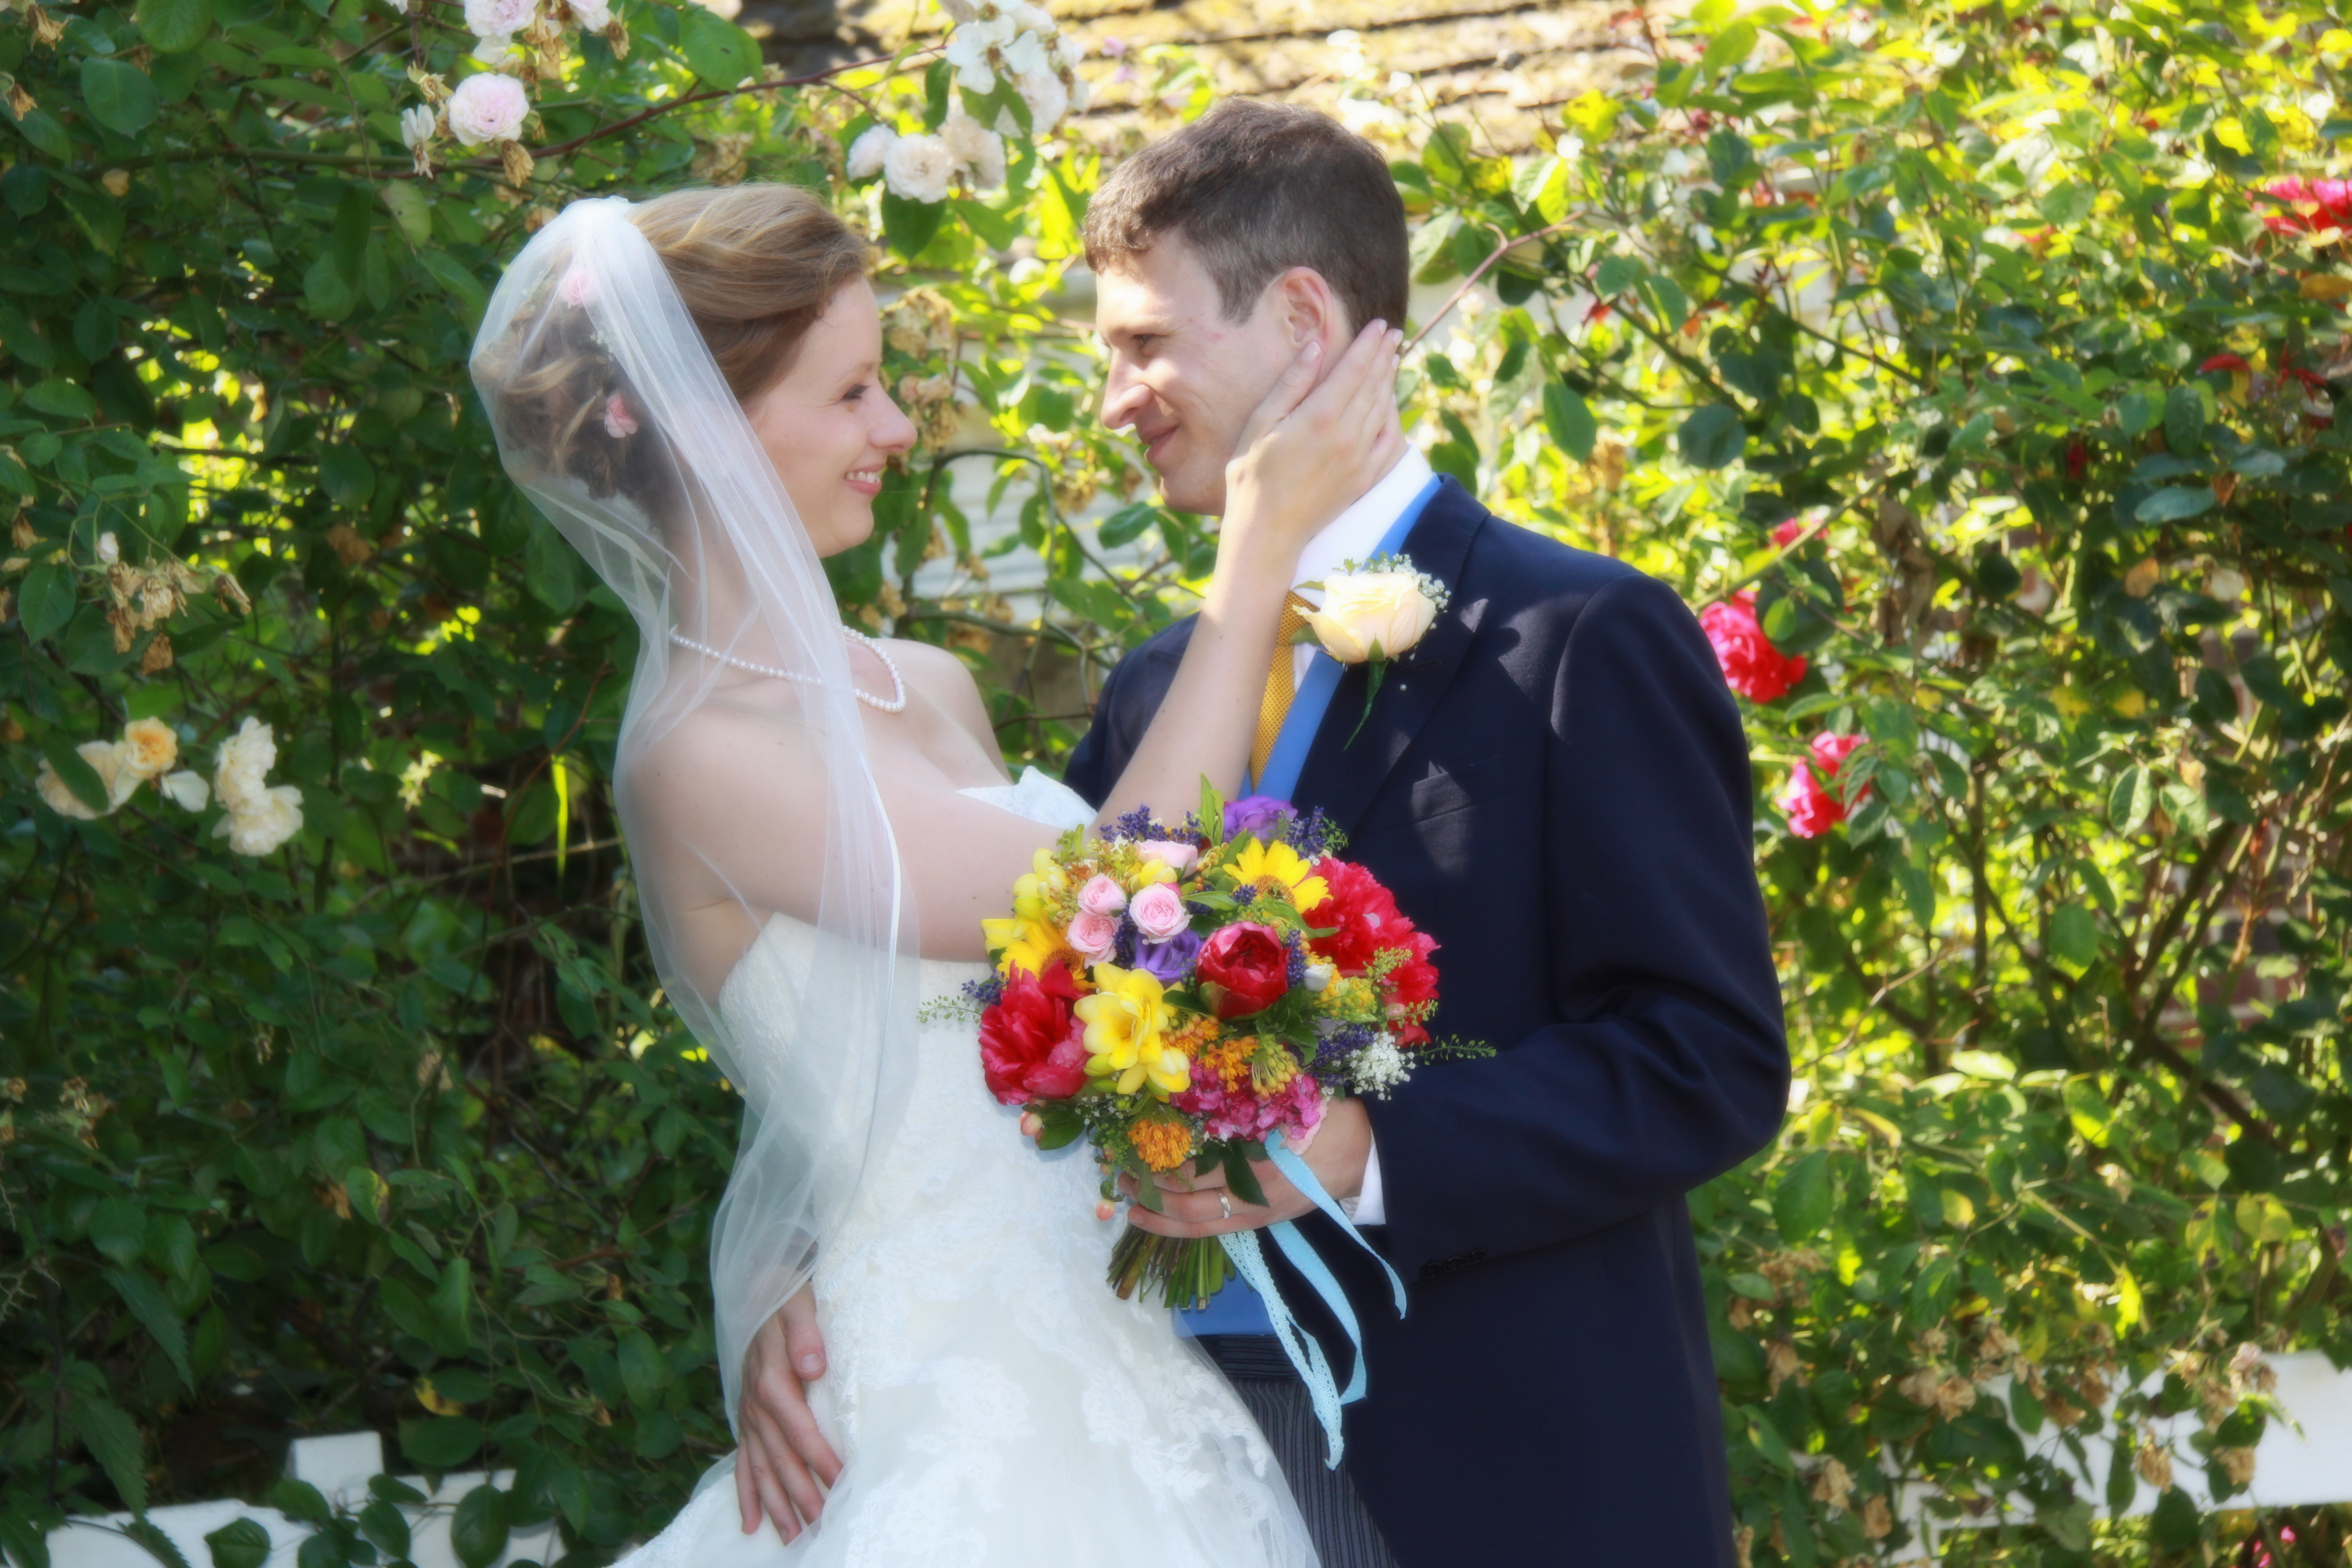 Wedding Videography by SMS